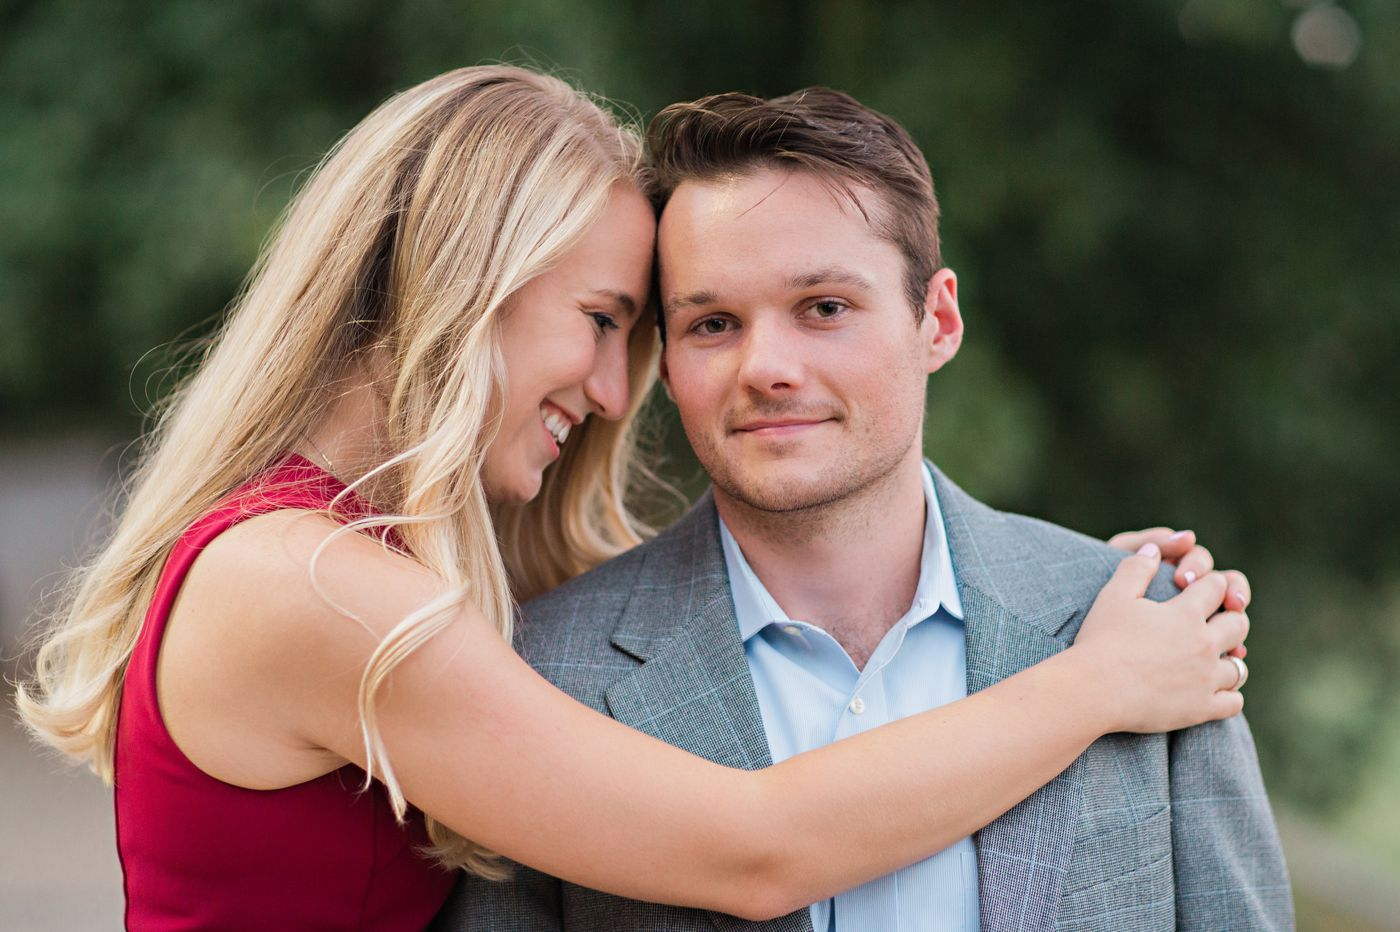 Atlanta-Beltline-Engagement-Session_0026